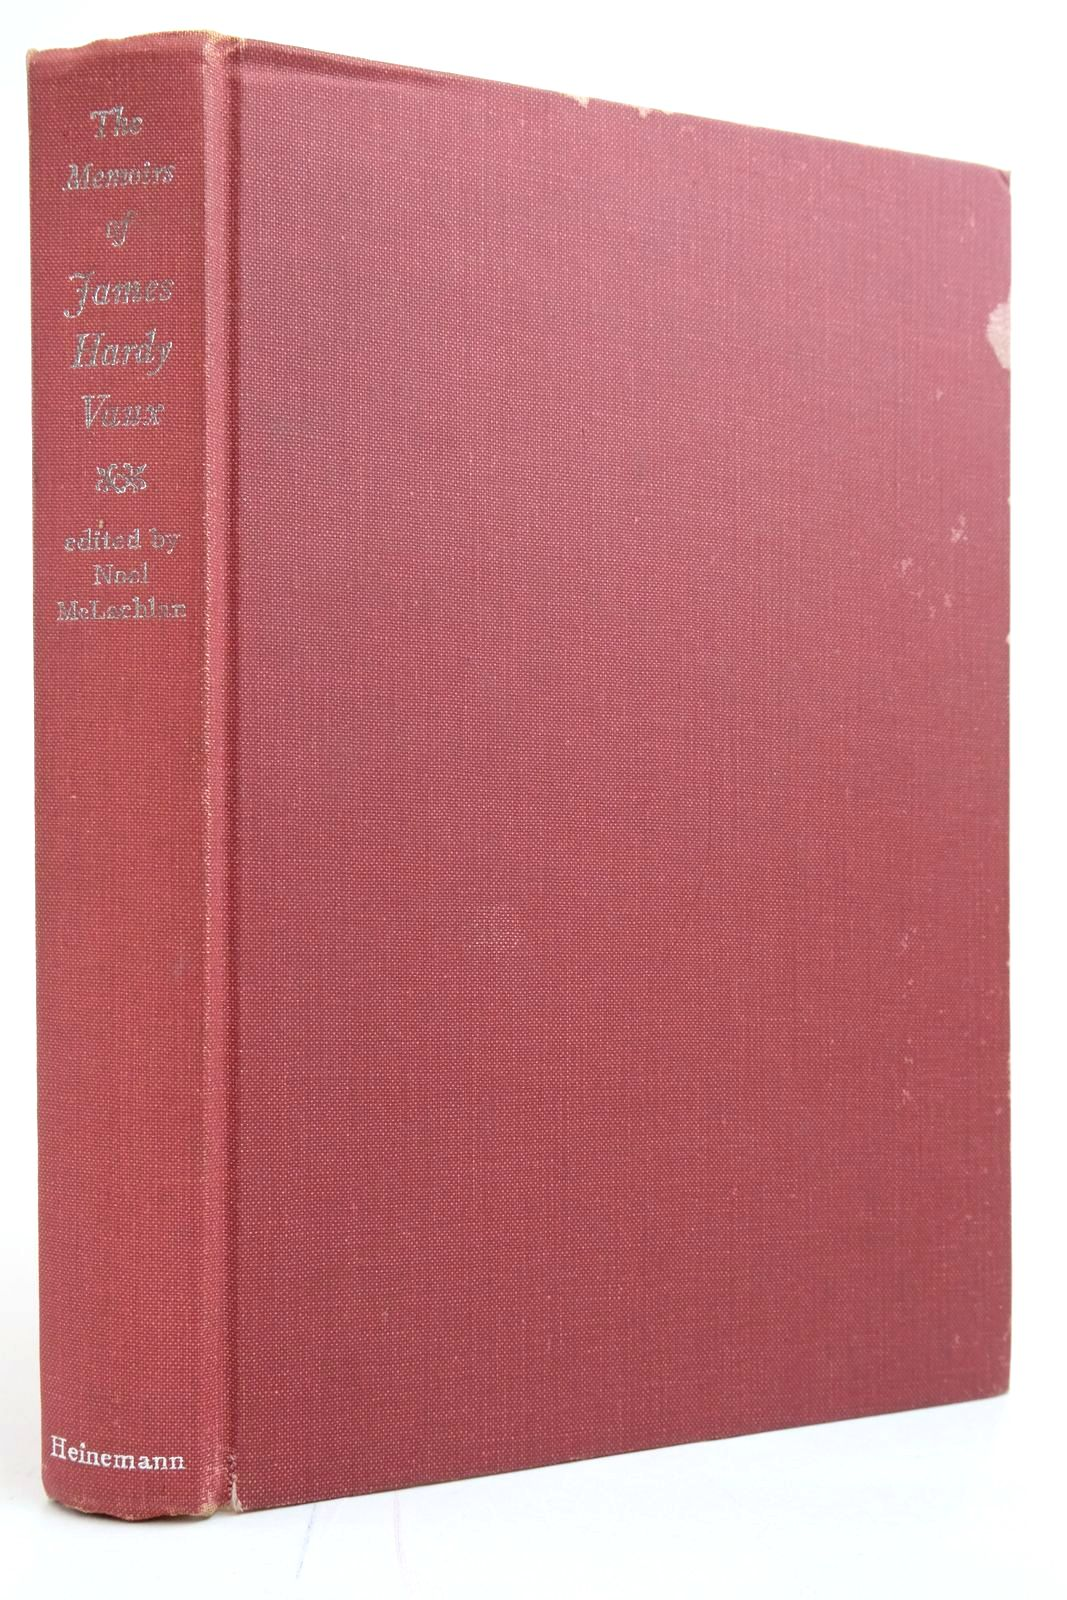 Photo of MEMOIRS OF JAMES HARDY VAUX- Stock Number: 2135186